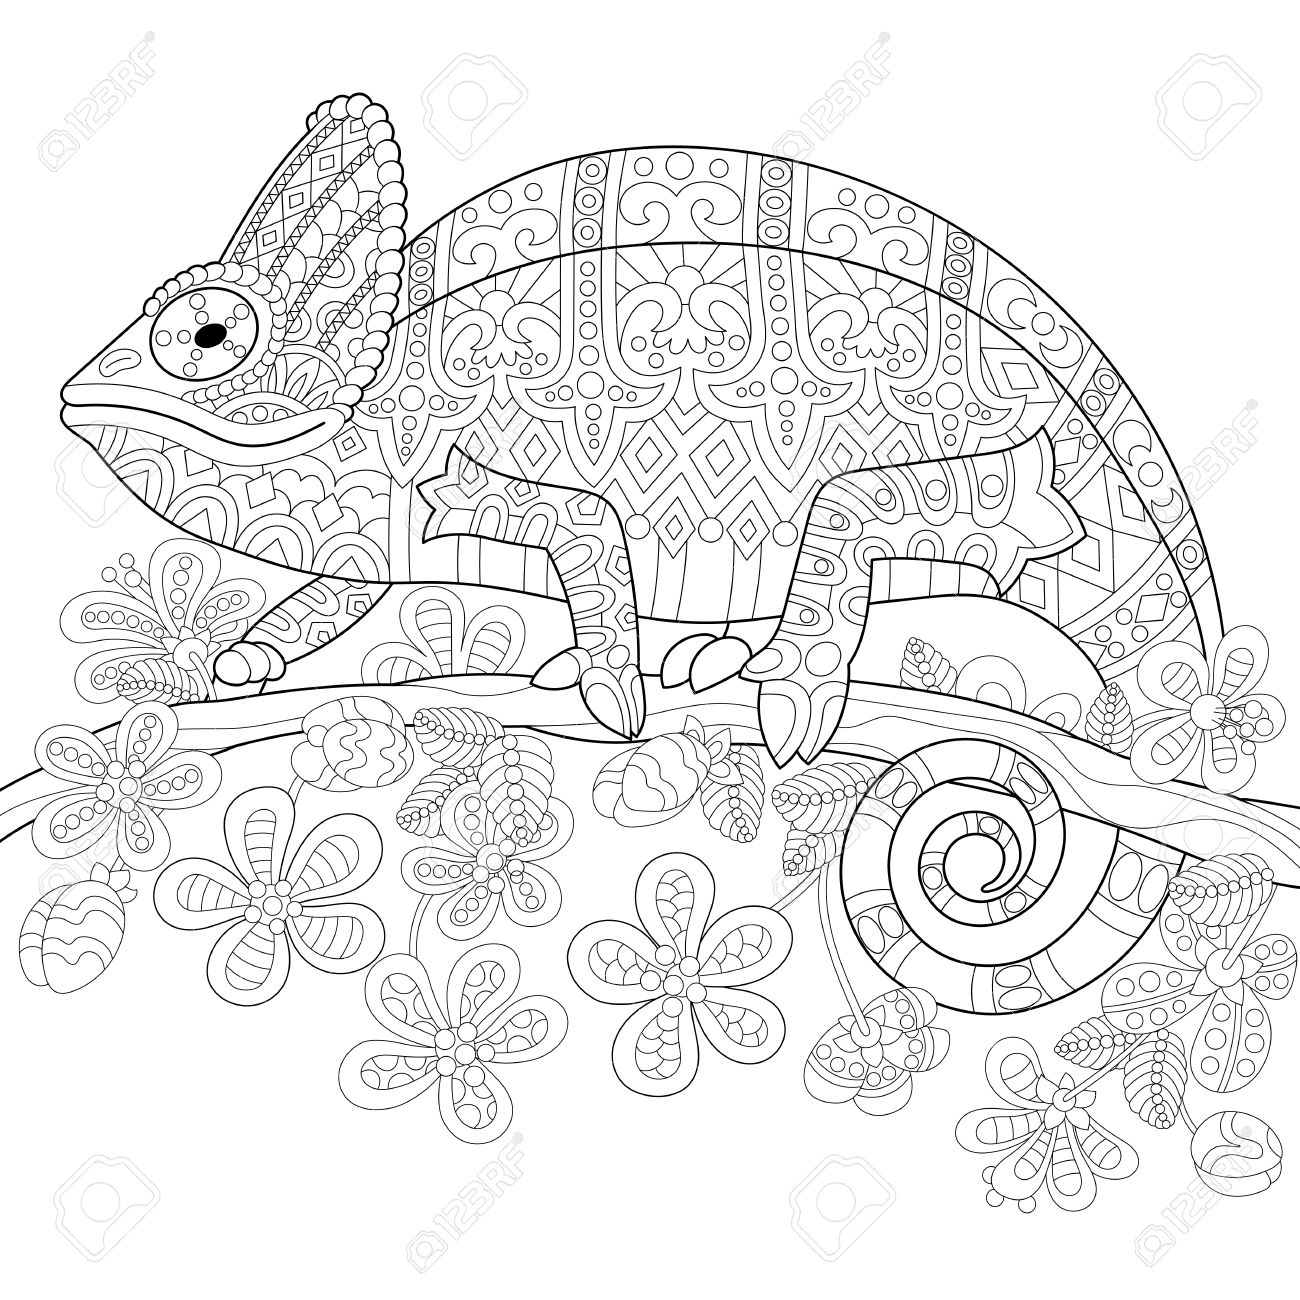 Coloring Book Page Of Chameleon Lizard And Stylized Tropical Flowers Freehand Sketch Drawing For Adult